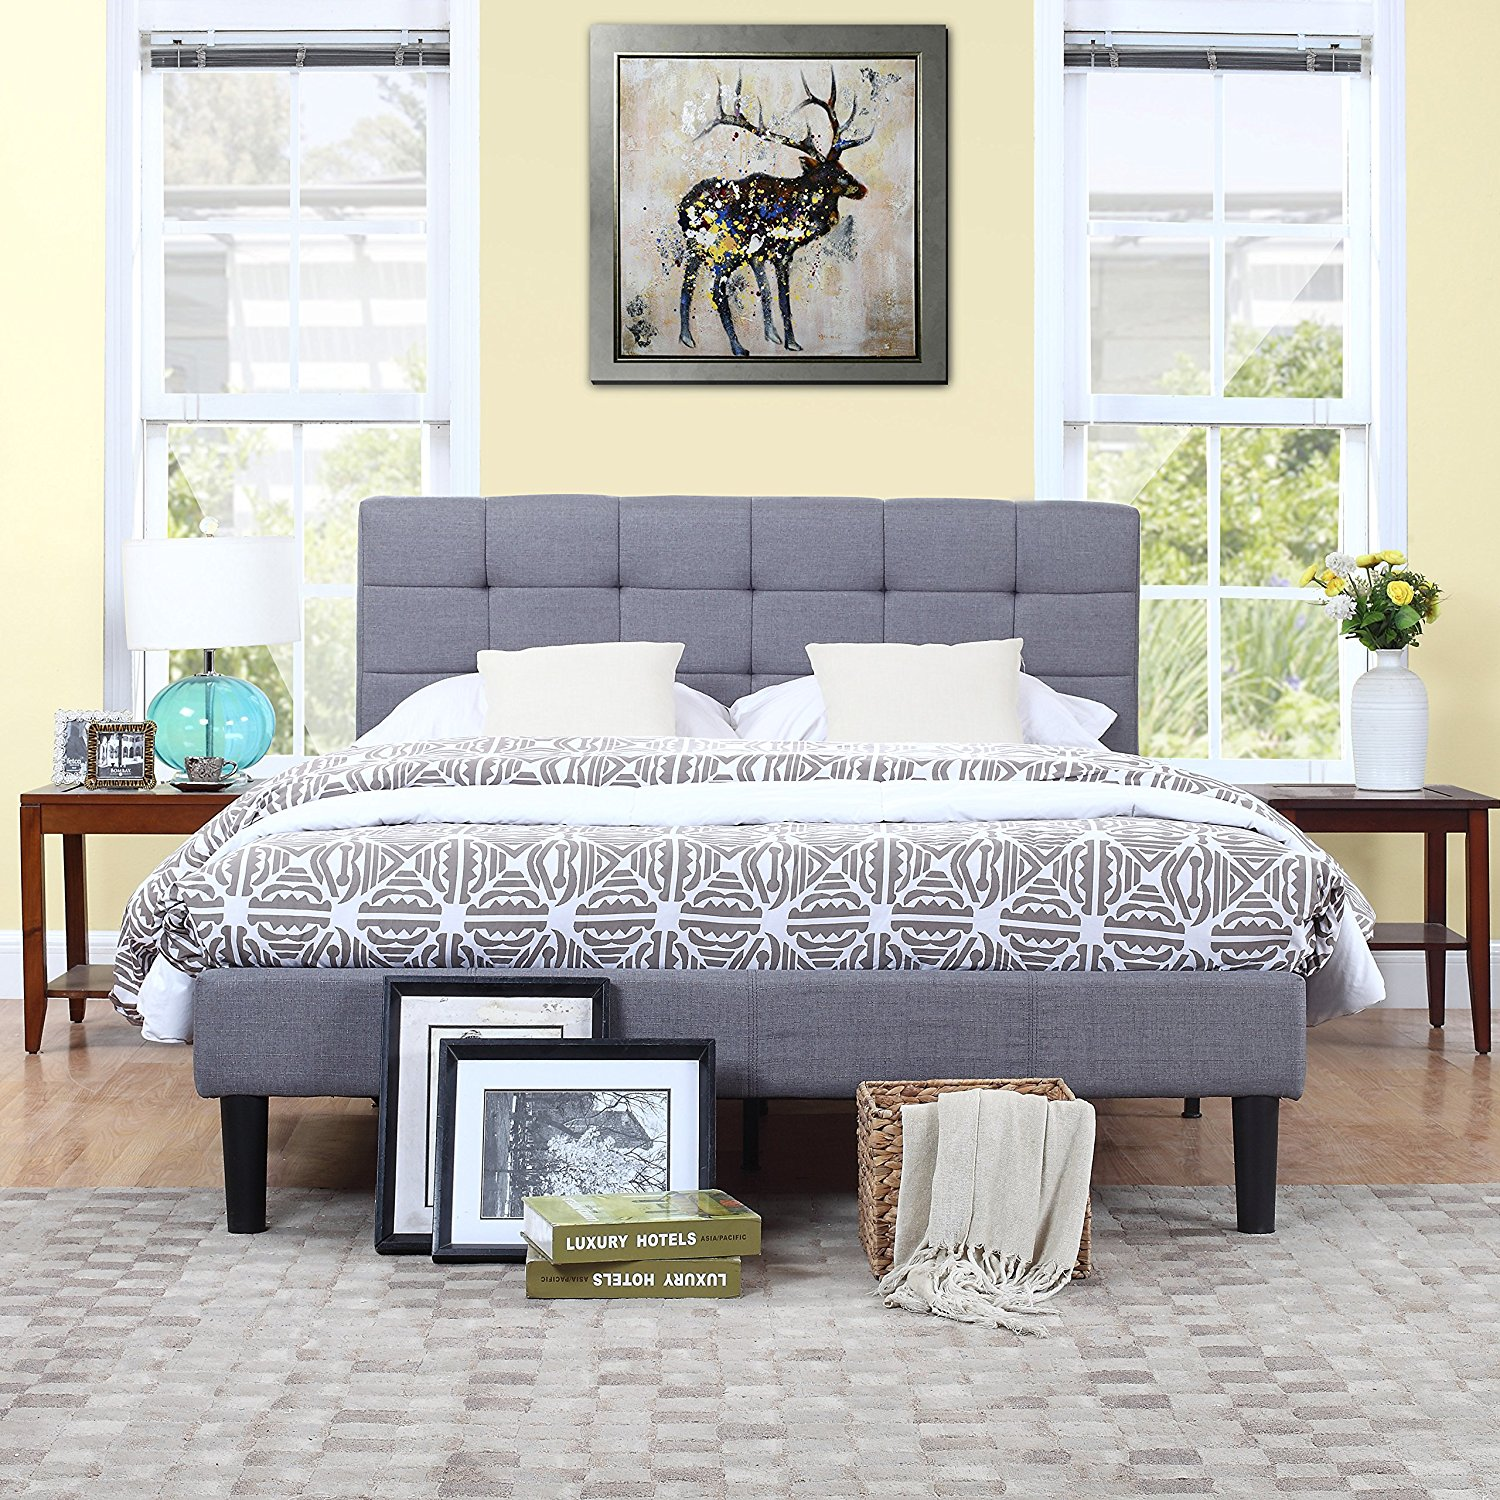 Cheap Ashley Furniture Bed Frame Find Ashley Furniture Bed Frame